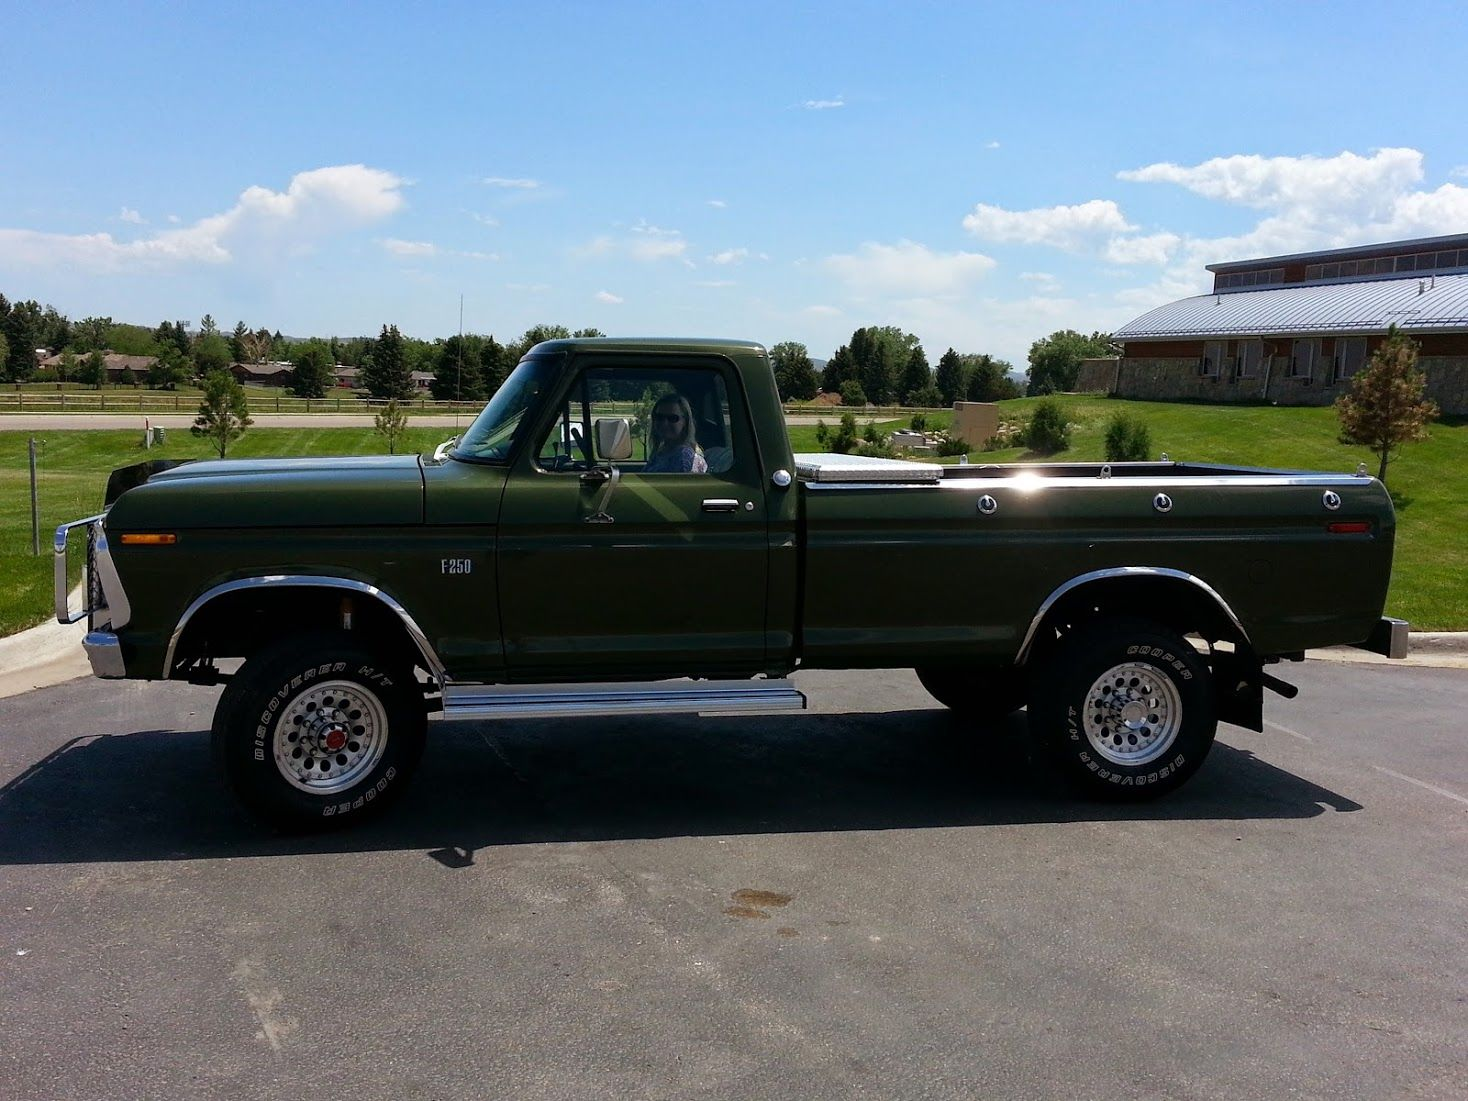 This is ogre my 76 ford f250 4x4 truck has been restored from the